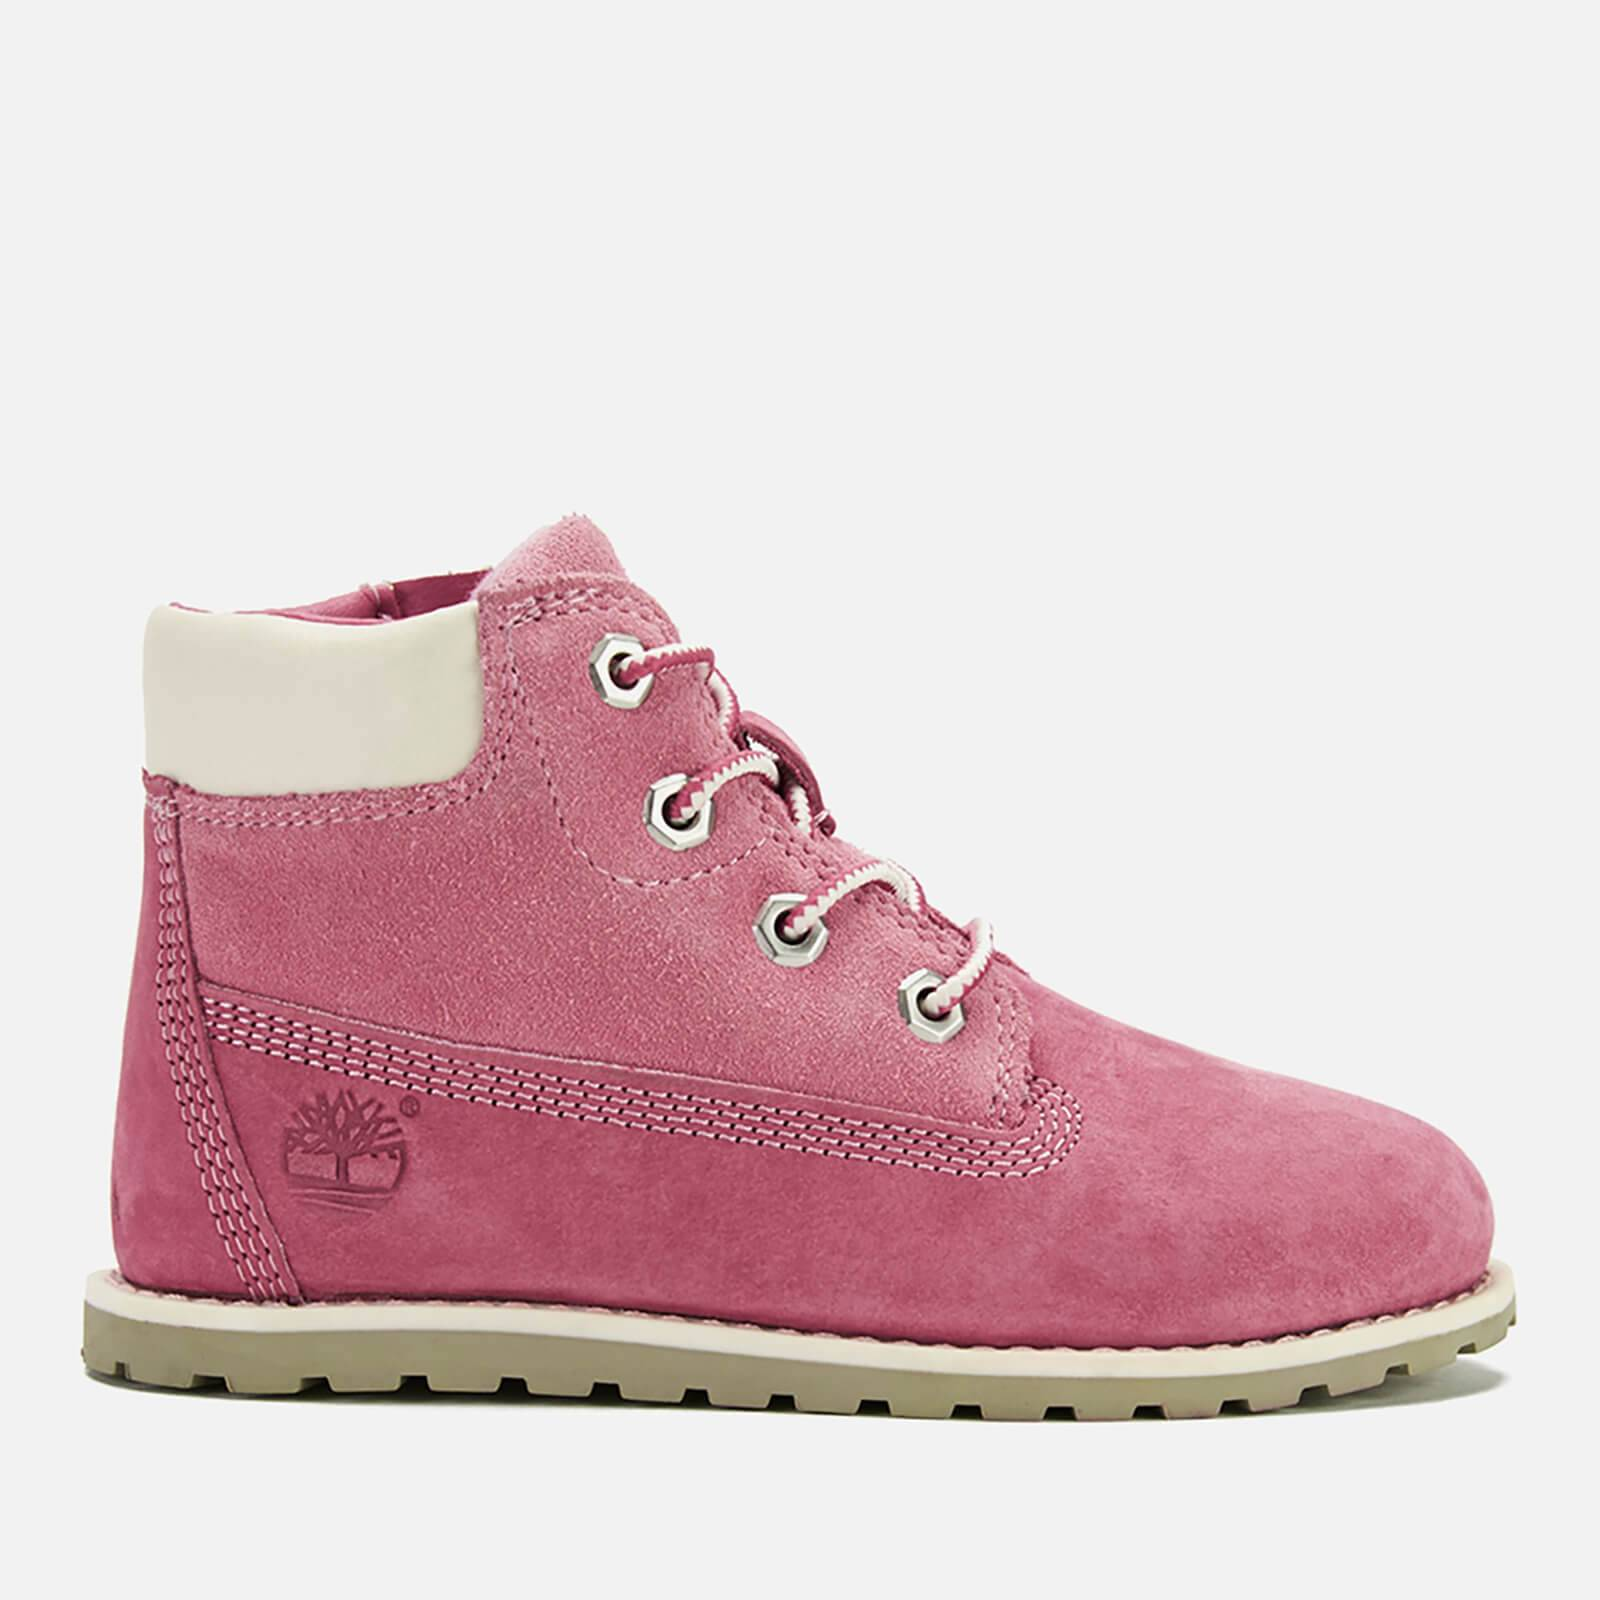 Timberland Toddlers' Pokey Pine Leather 6 Inch Zip Boots - Pink - UK 7 Toddler